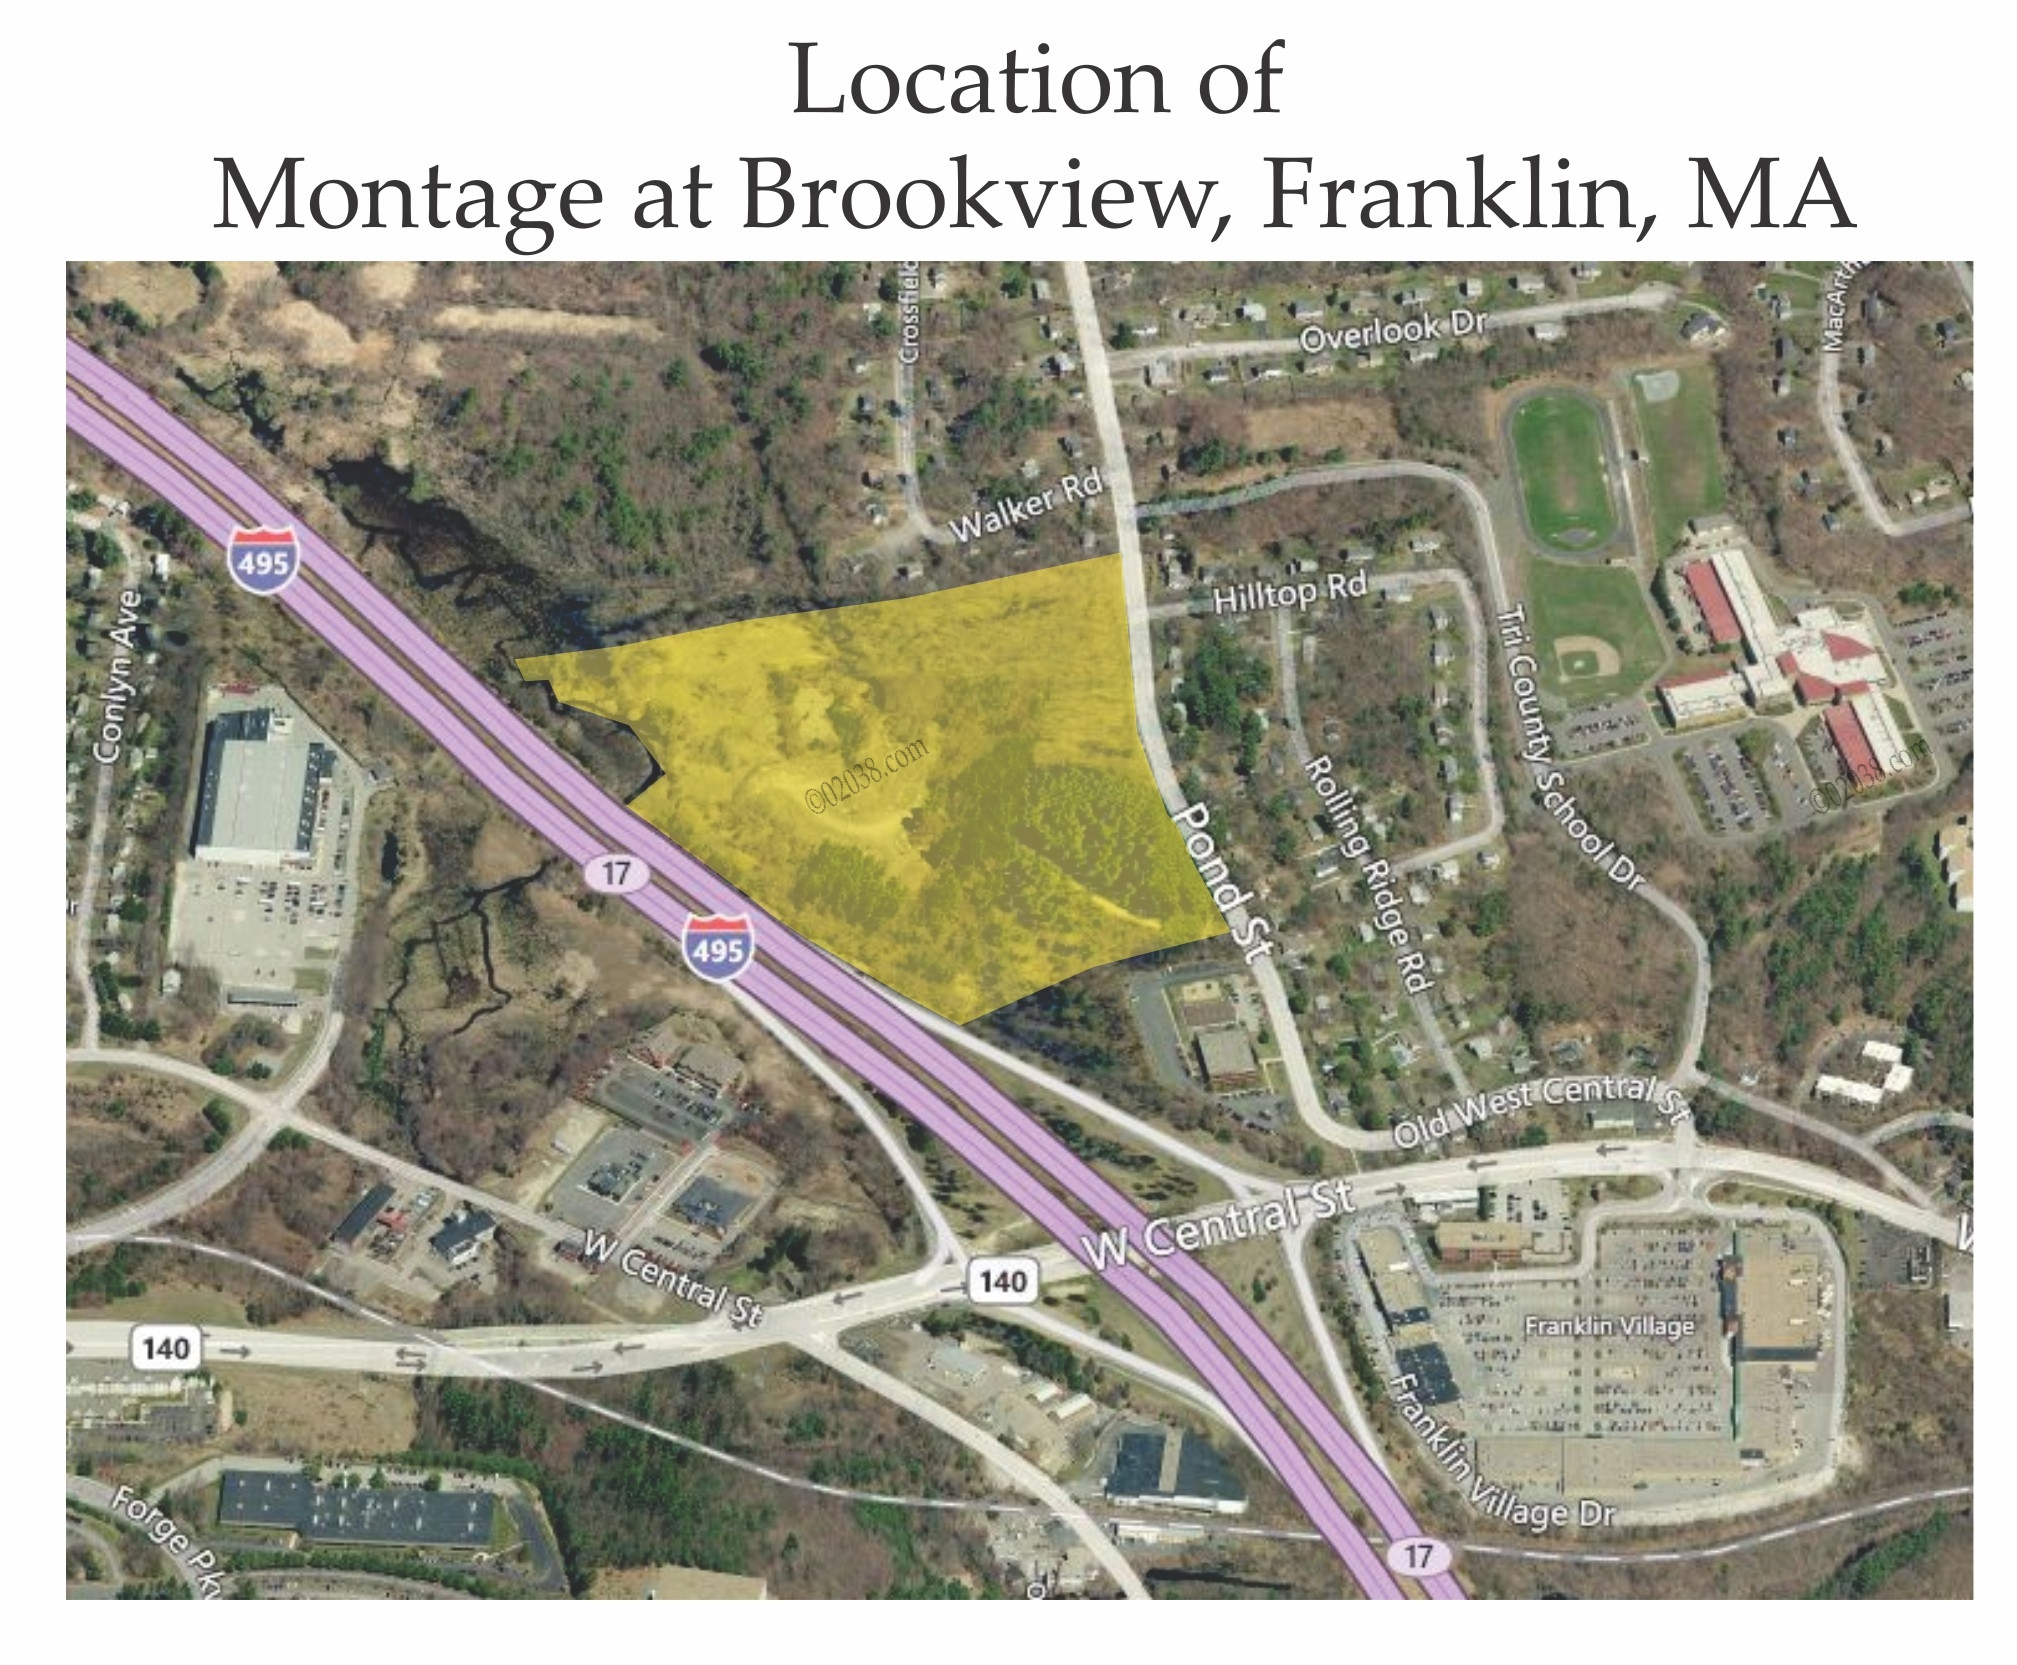 Montage Brookview Franklin MA